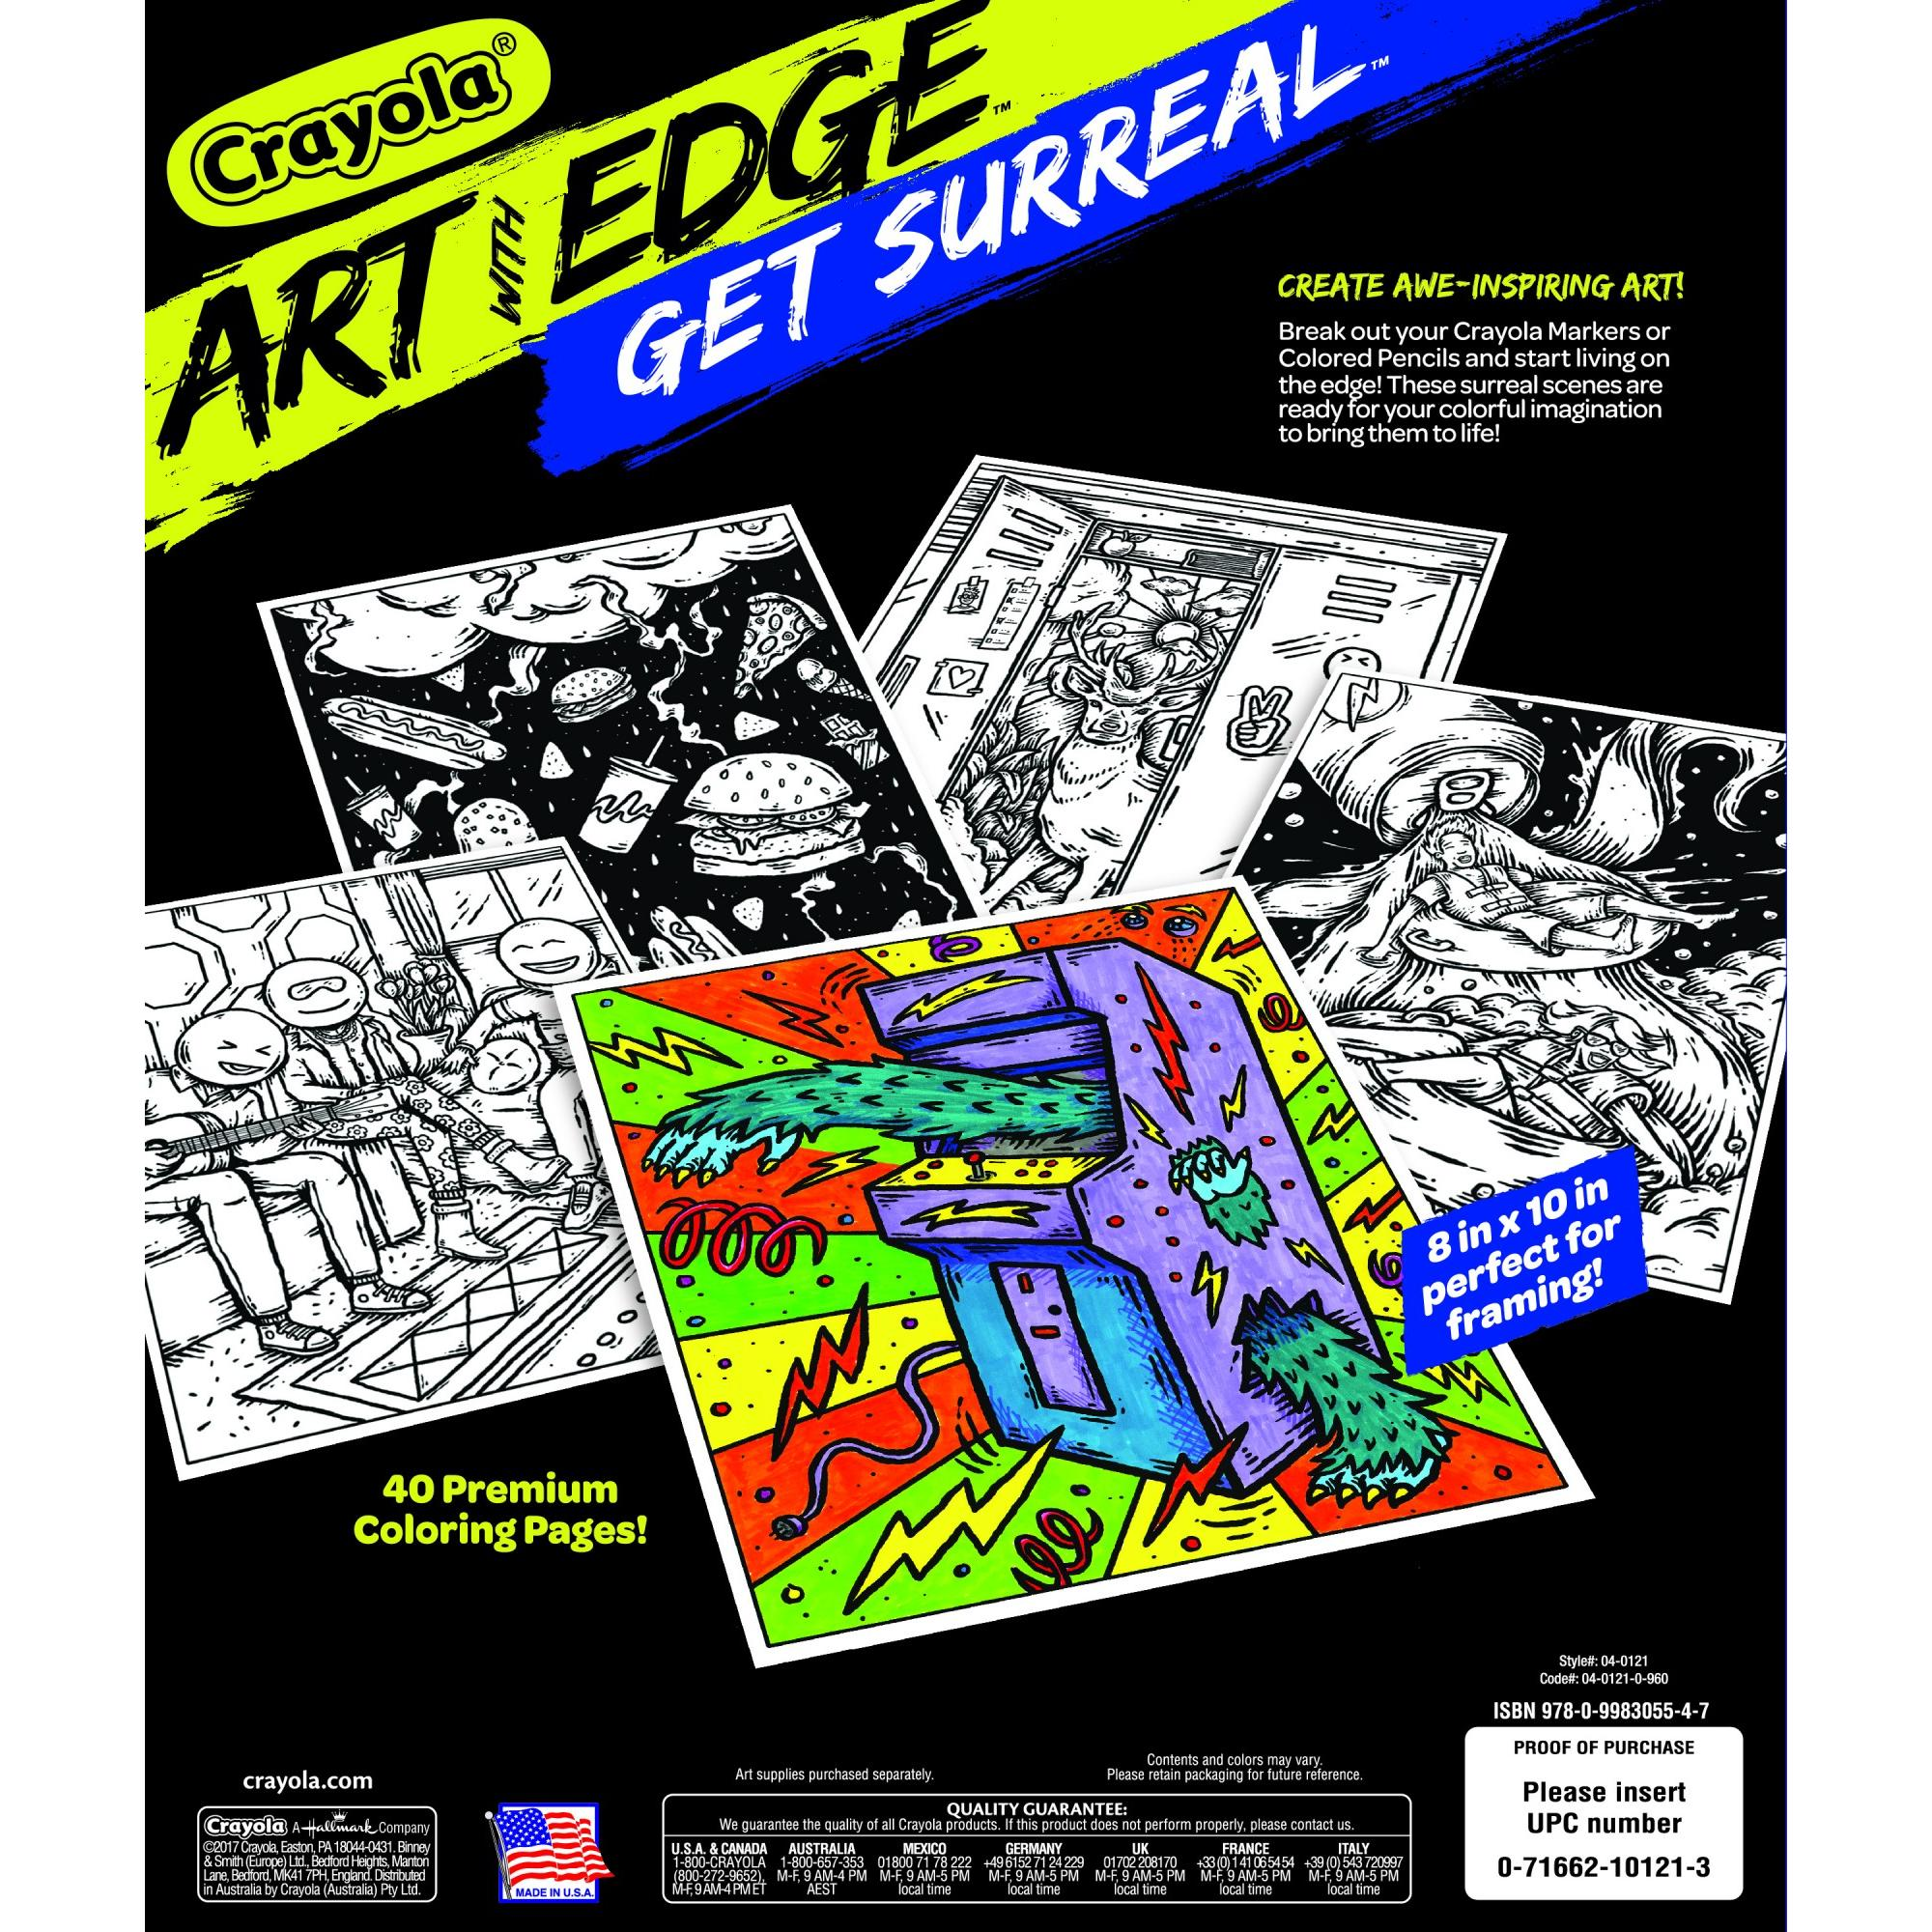 Crayola Art With Edge Get Surreal Coloring Book, 40 Pages by Crayola